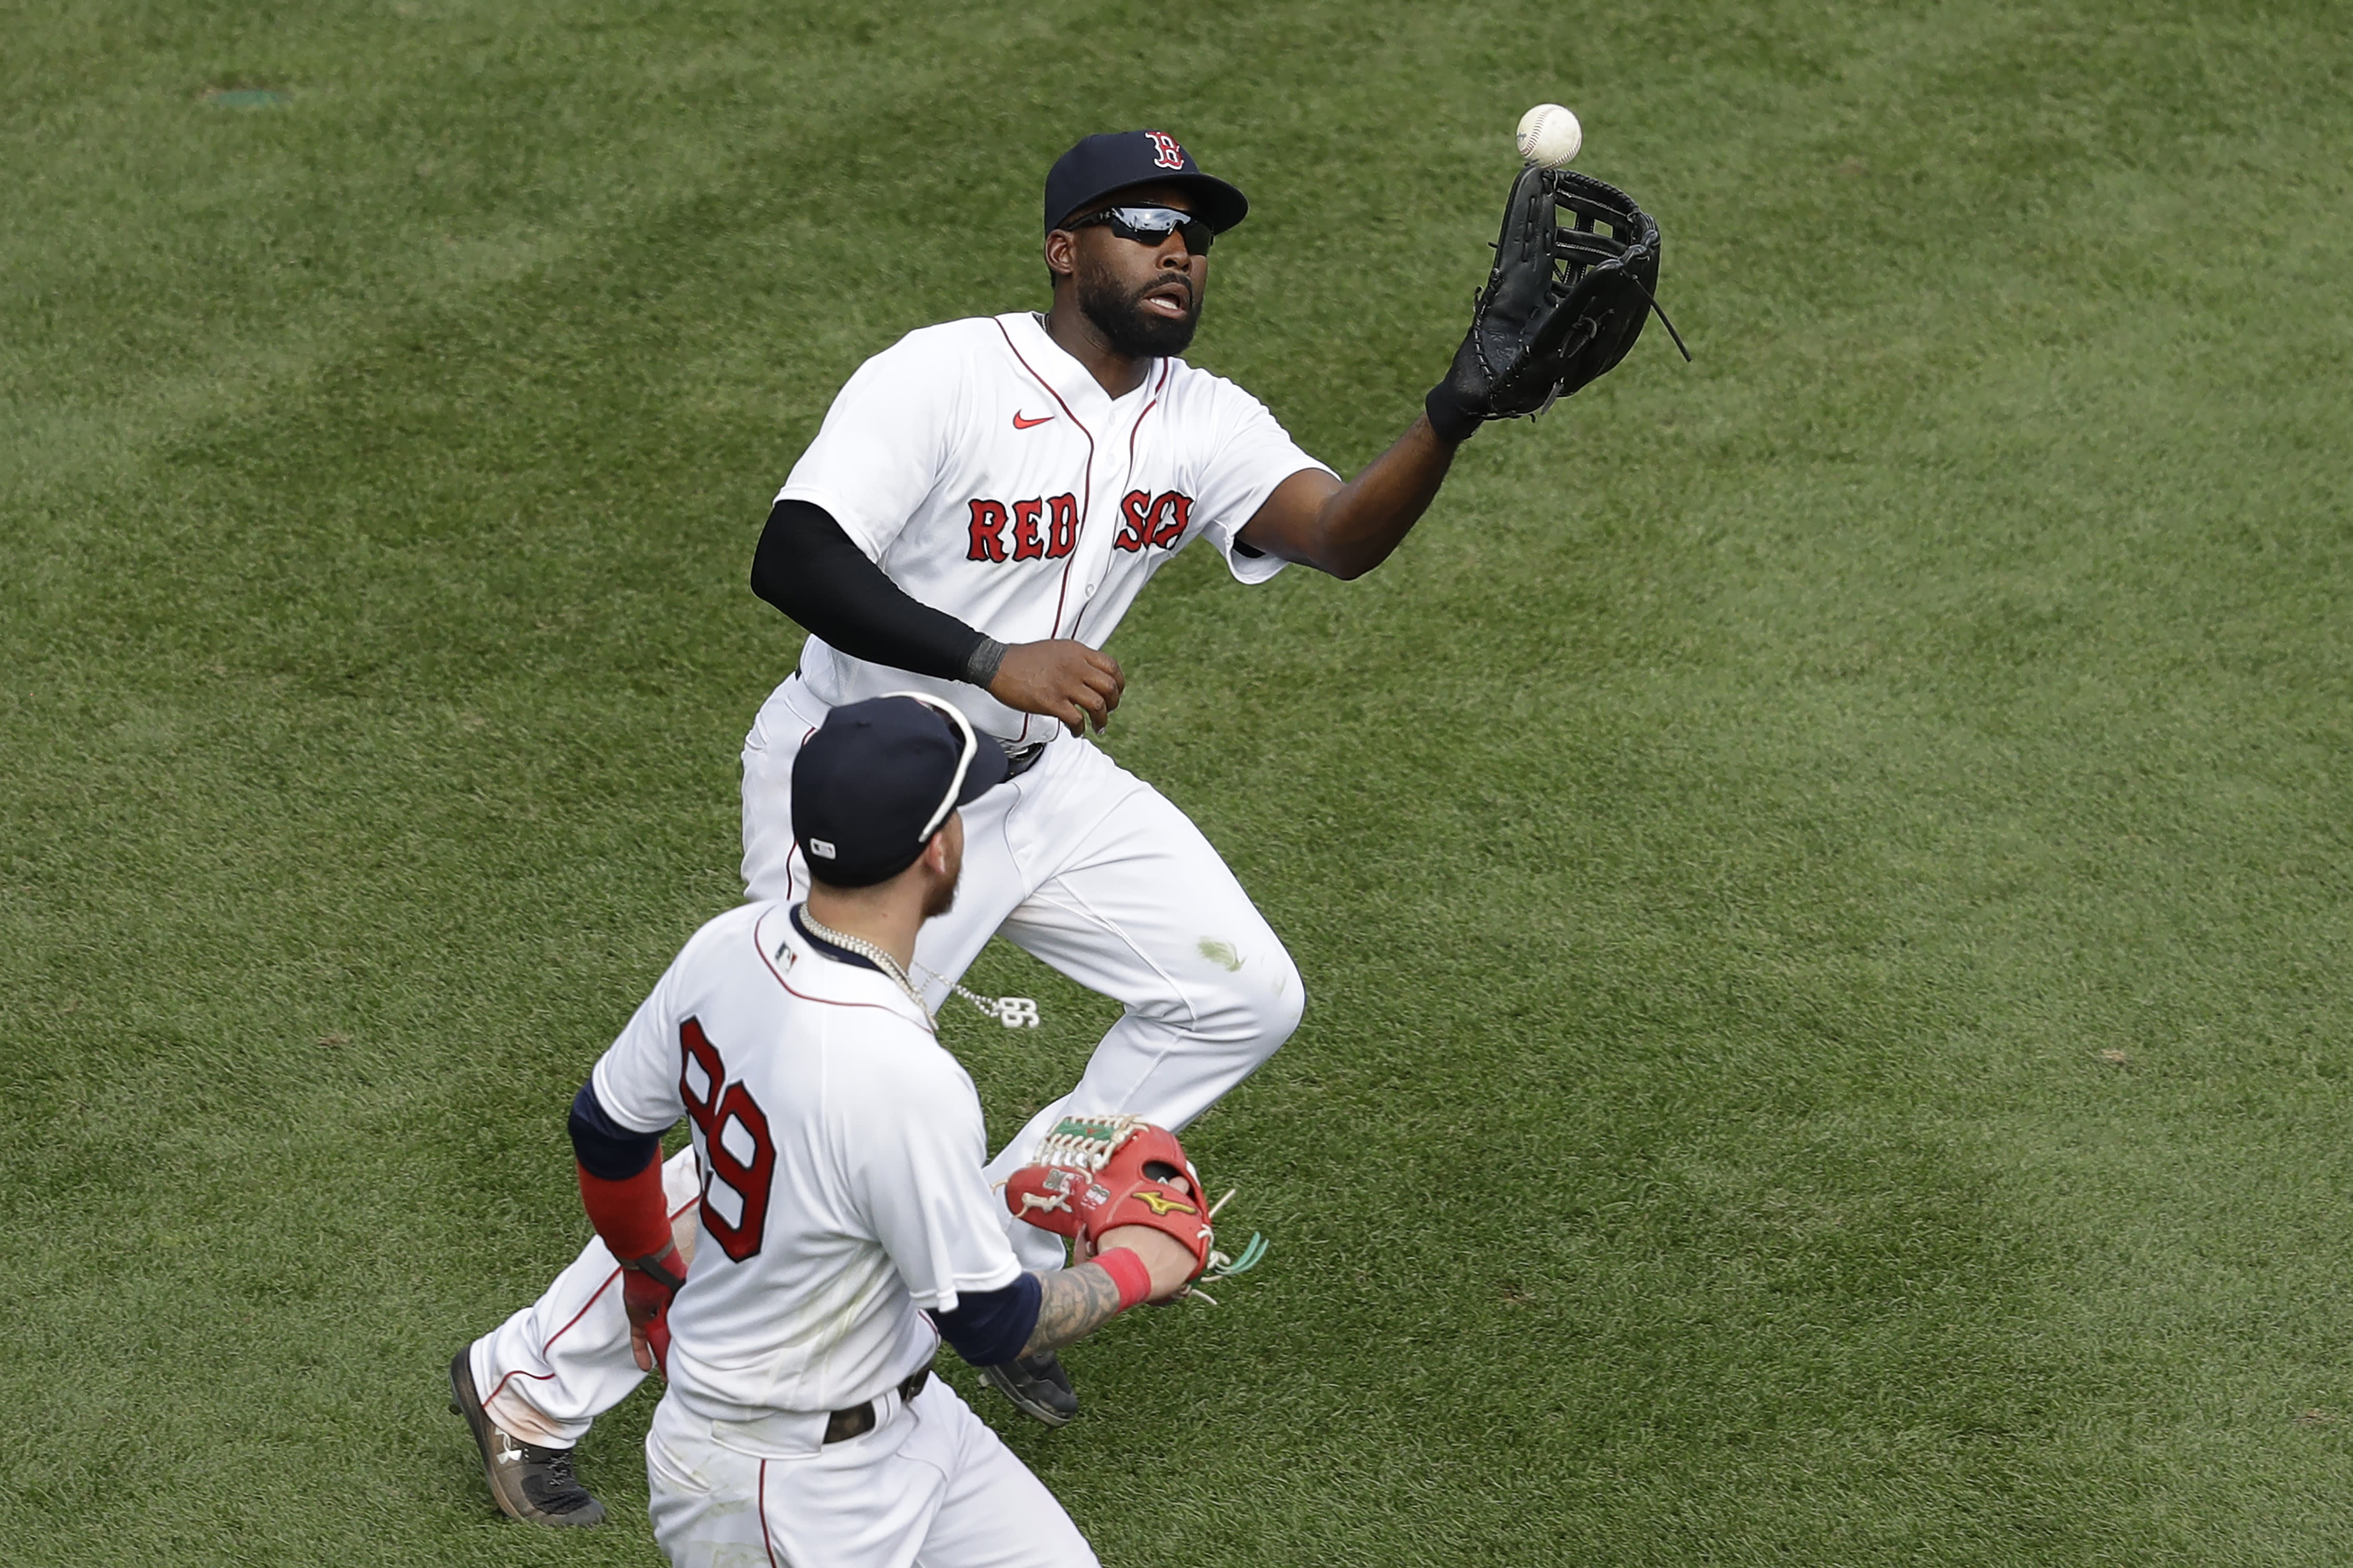 Boston Red Sox's Jackie Bradley Jr., top, gets his glove on an RBI-single by Baltimore Orioles' Chris Davis after the ball bounced off the Green Monster wall as Alex Verdugo, bottom, runs beside him during the ninth inning of a baseball game, Sunday, July 26, 2020, in Boston. (AP Photo/Steven Senne)